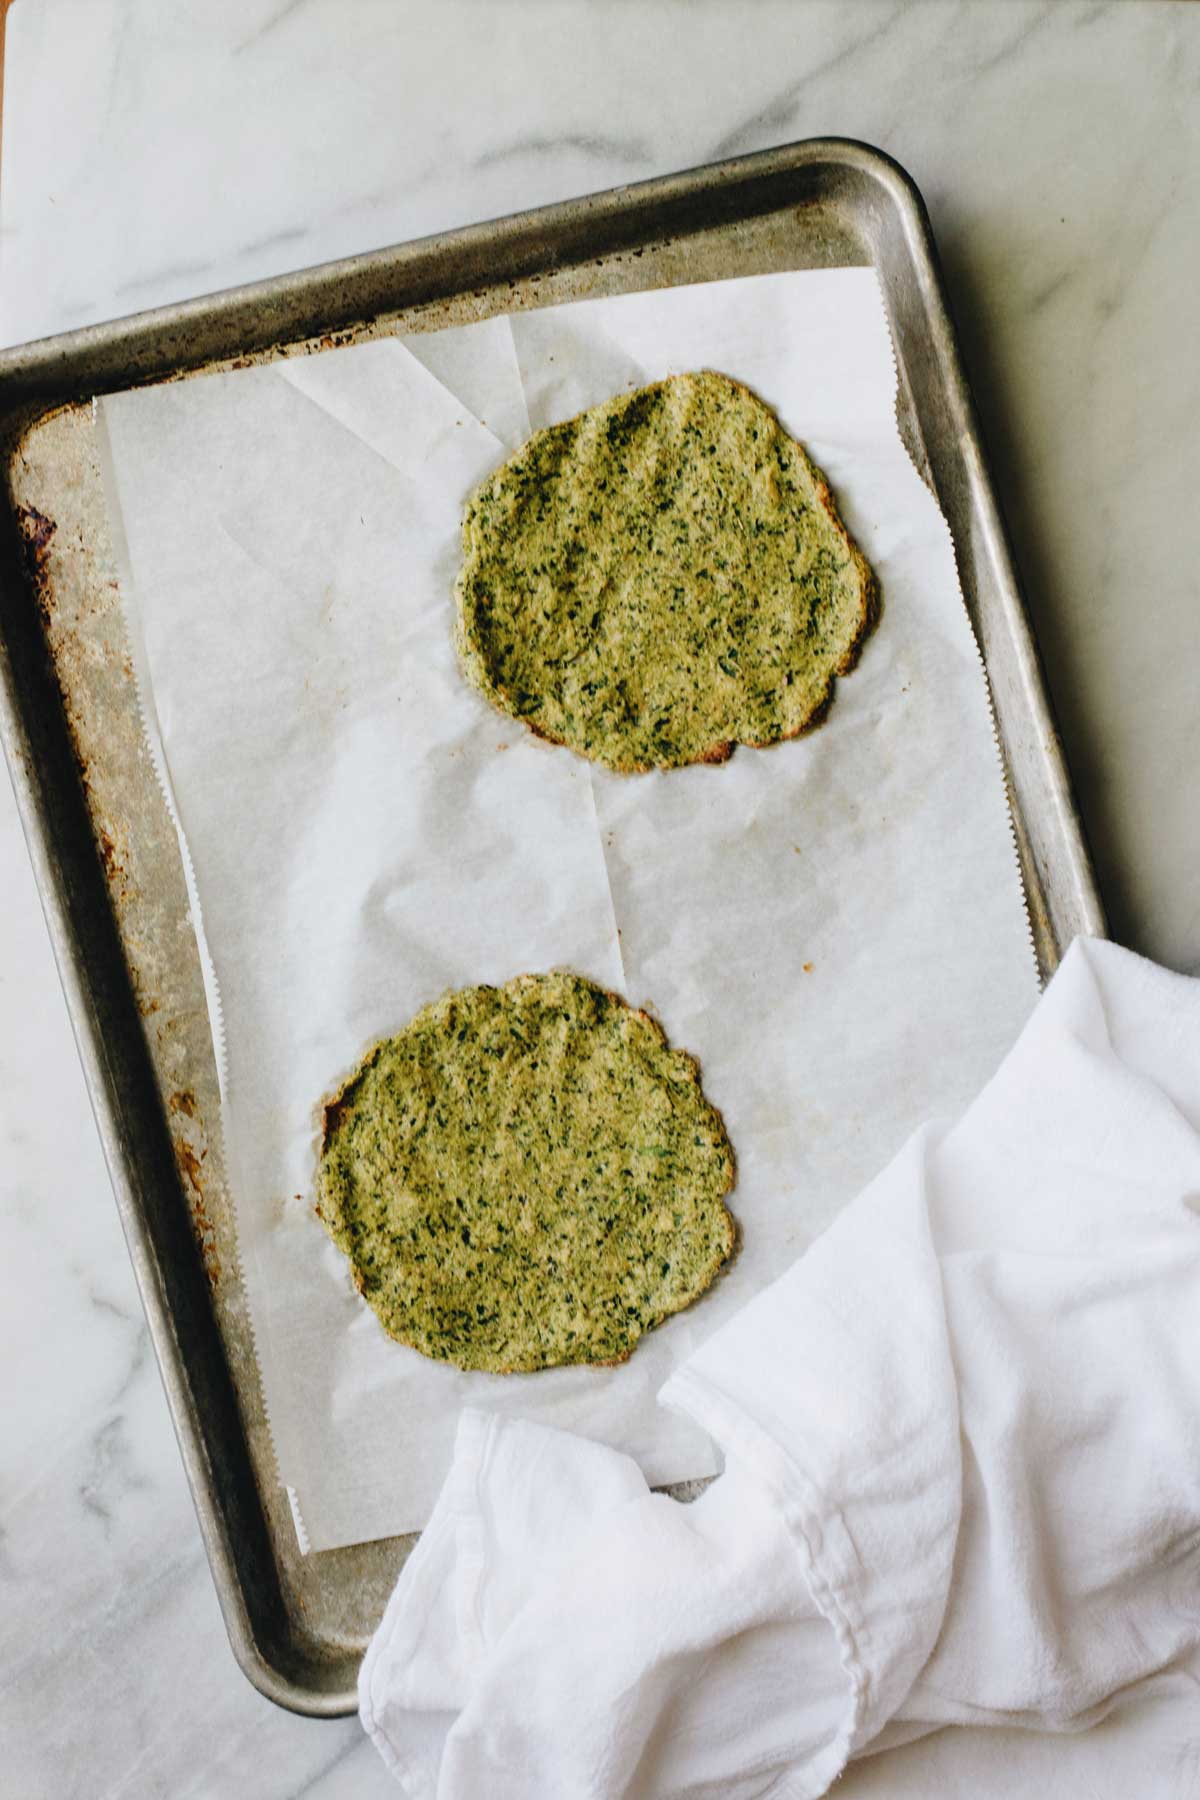 ZUCCHINI TORTILLAS (NO GRAINS OR DAIRY!)